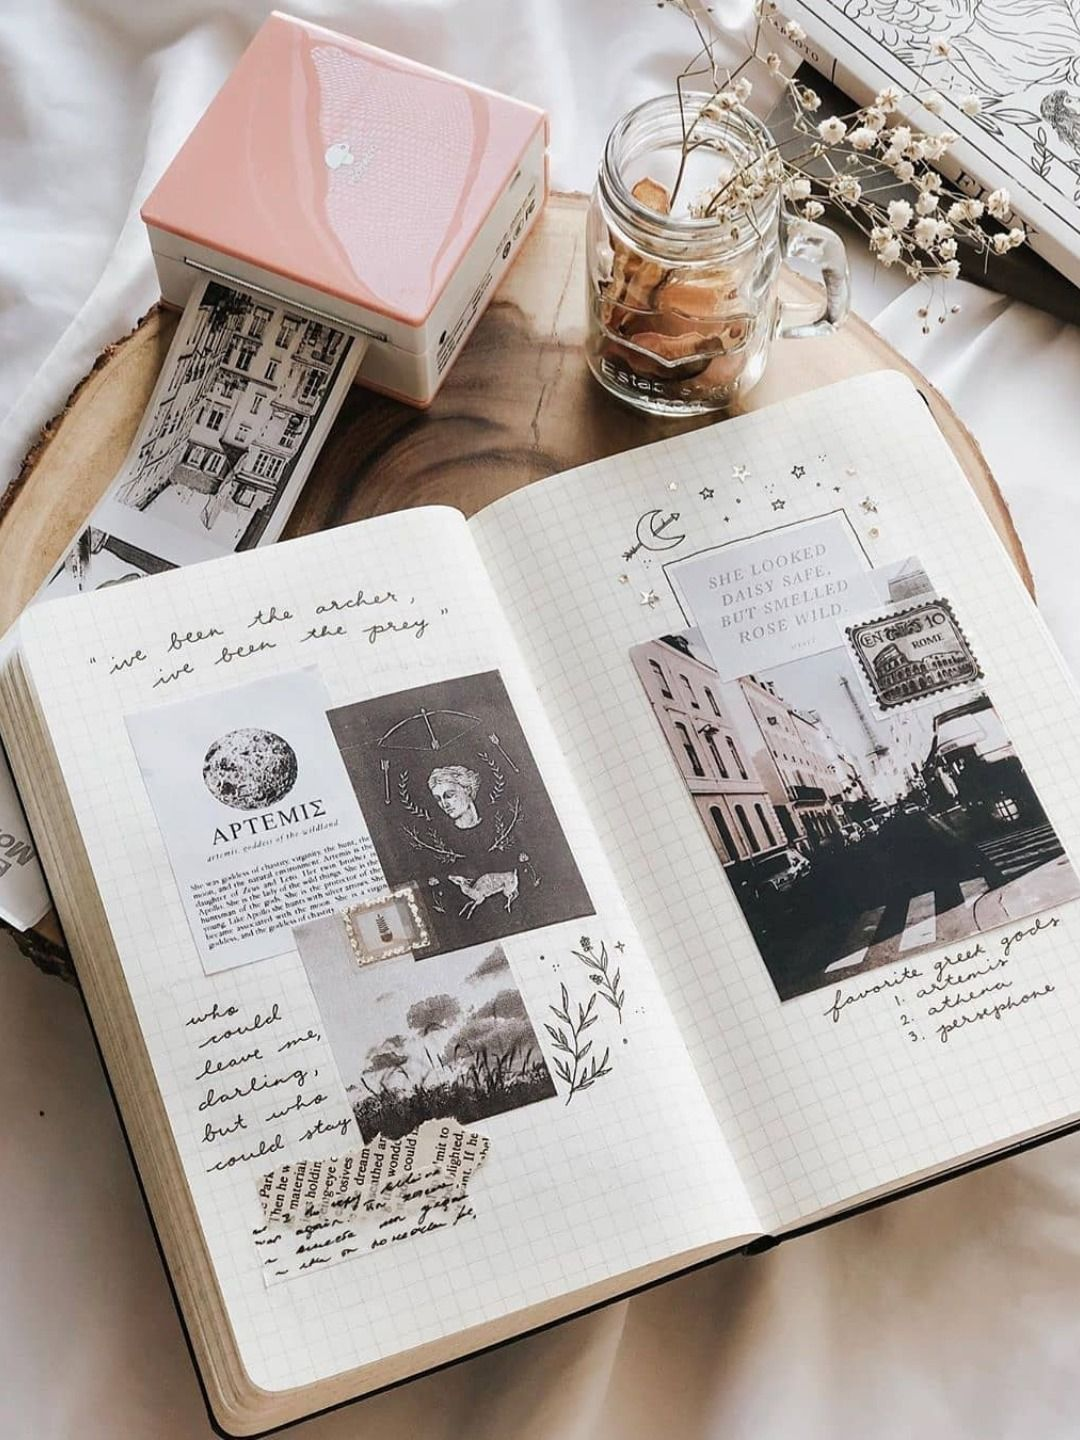 How About Making Bullet Journal At Weekends Bullet Journal Books Art Journal Challenge Bullet Journal Art